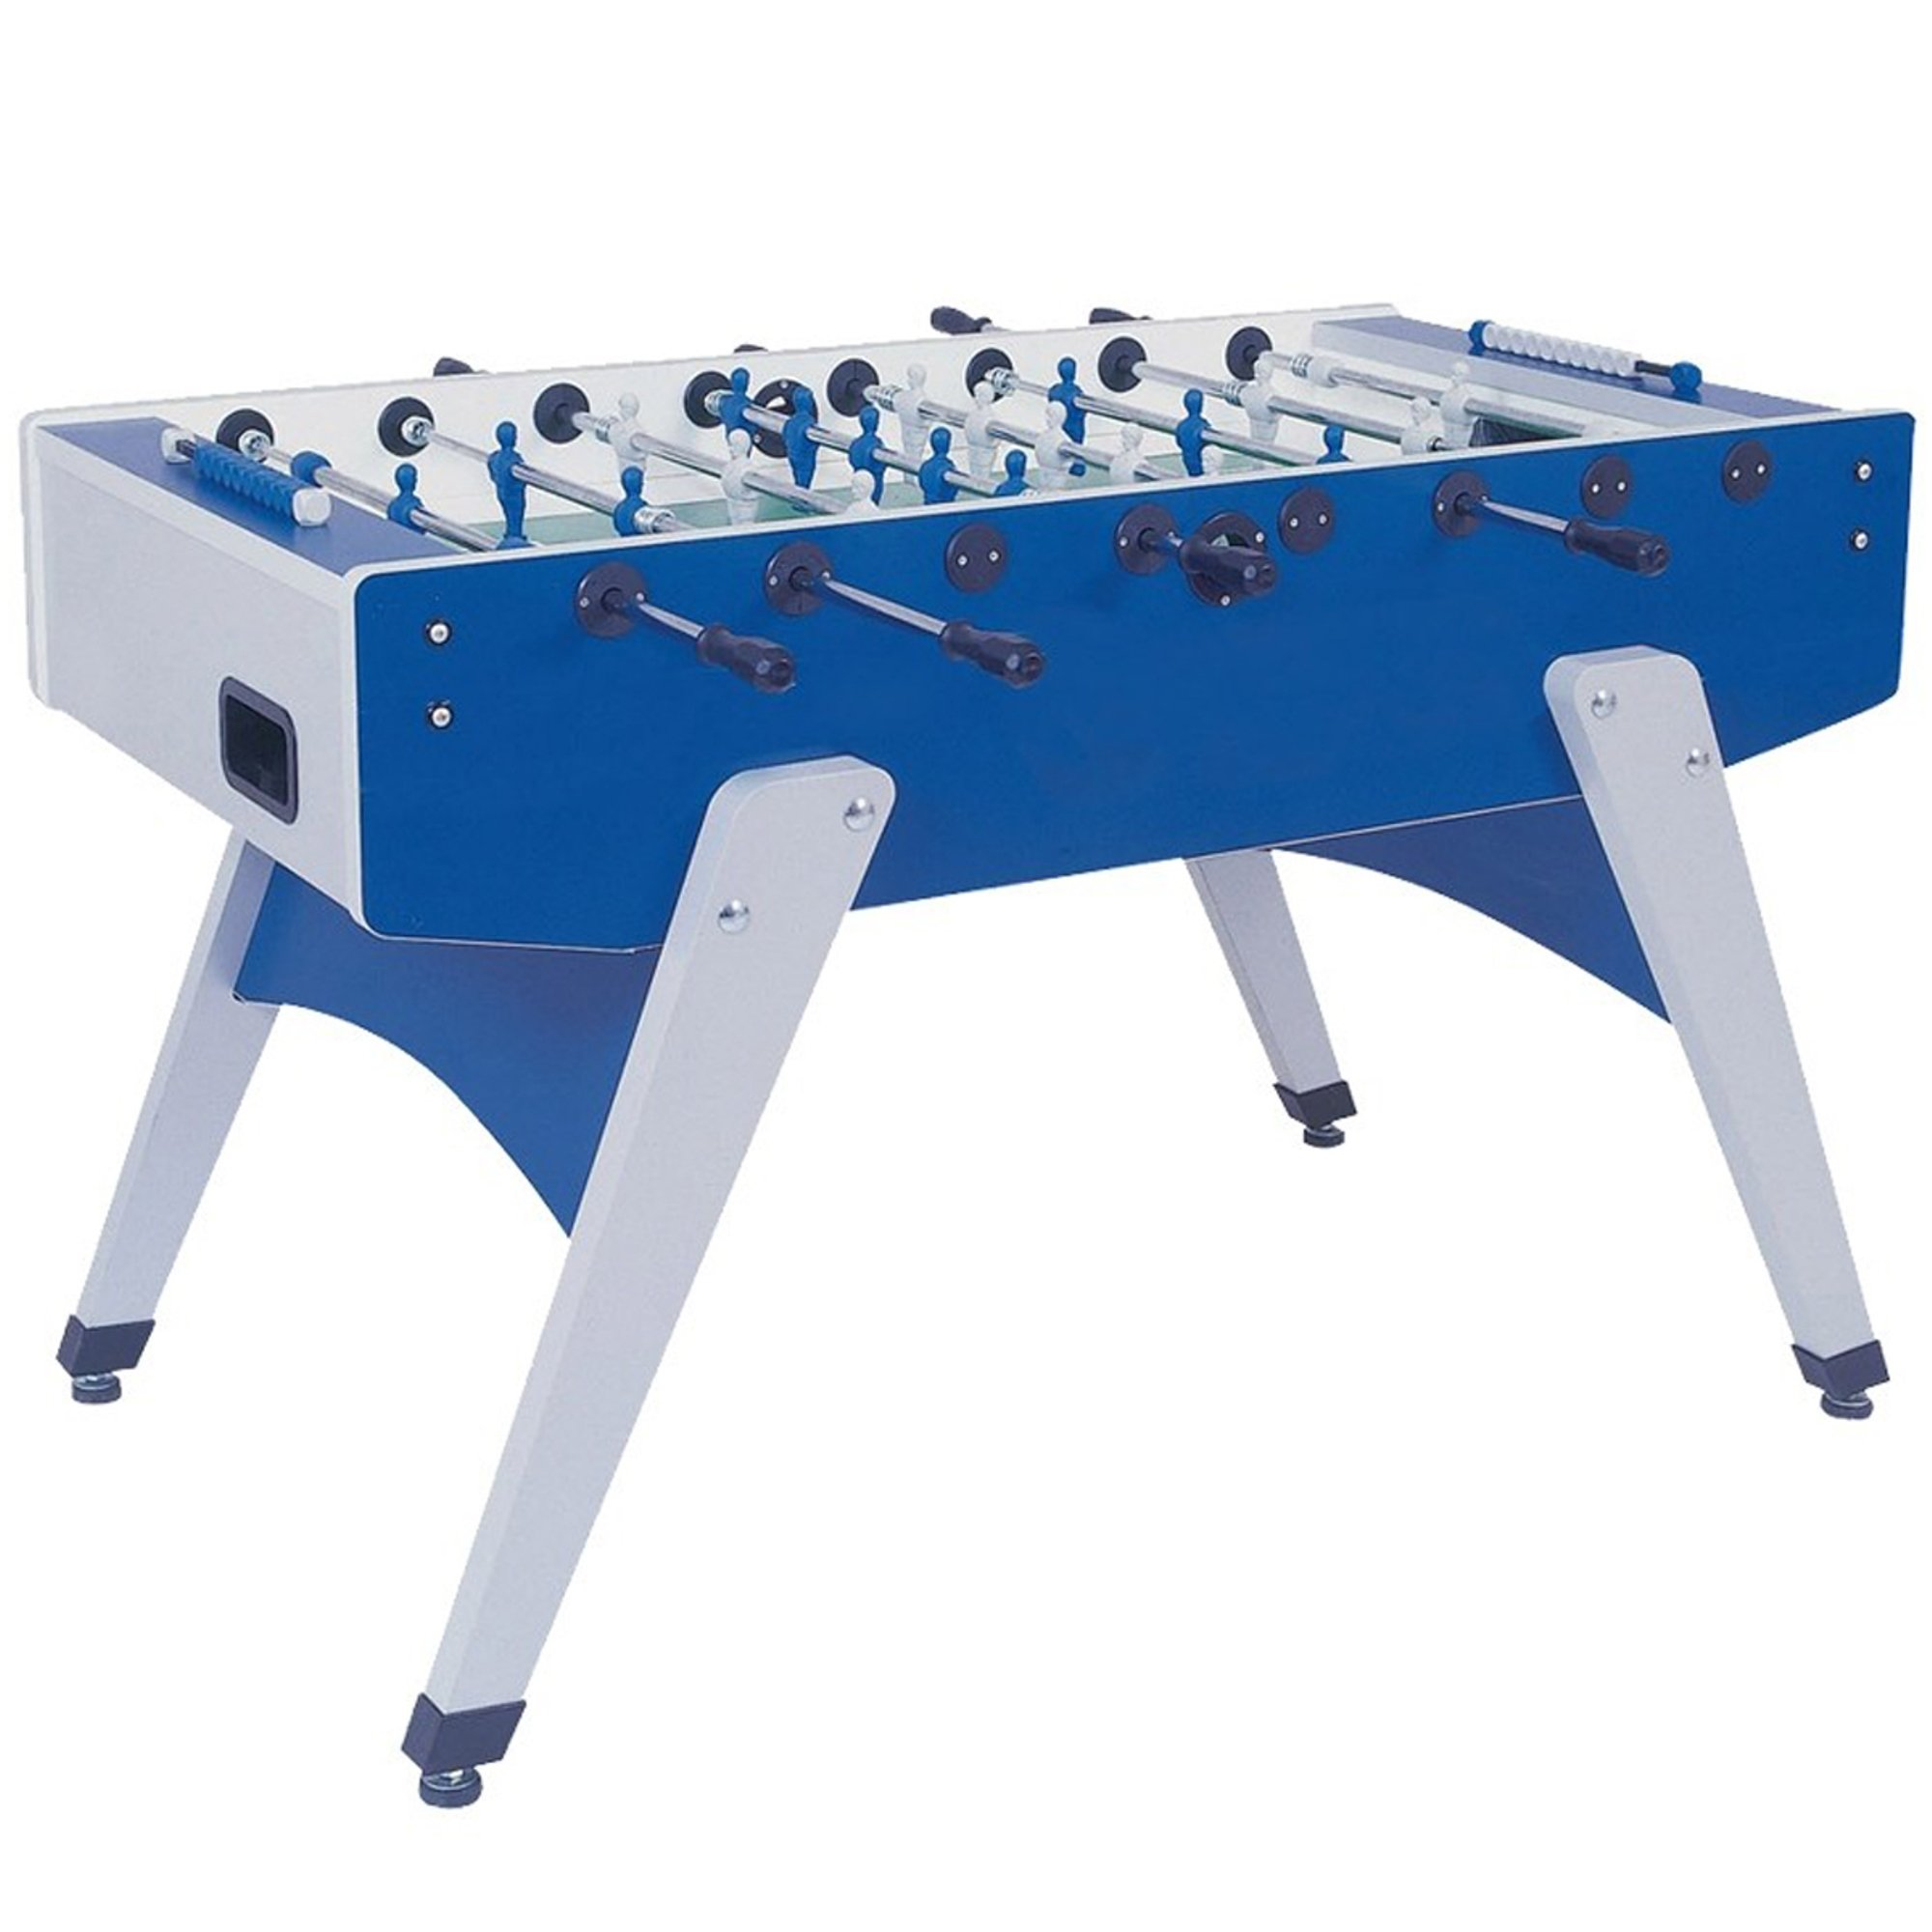 Garlando G-2000 Weatherproof Outdoor Foosball Table with Slanted Legs, Leg Levelers, 10 Standard Balls and Table Cover by Garlando